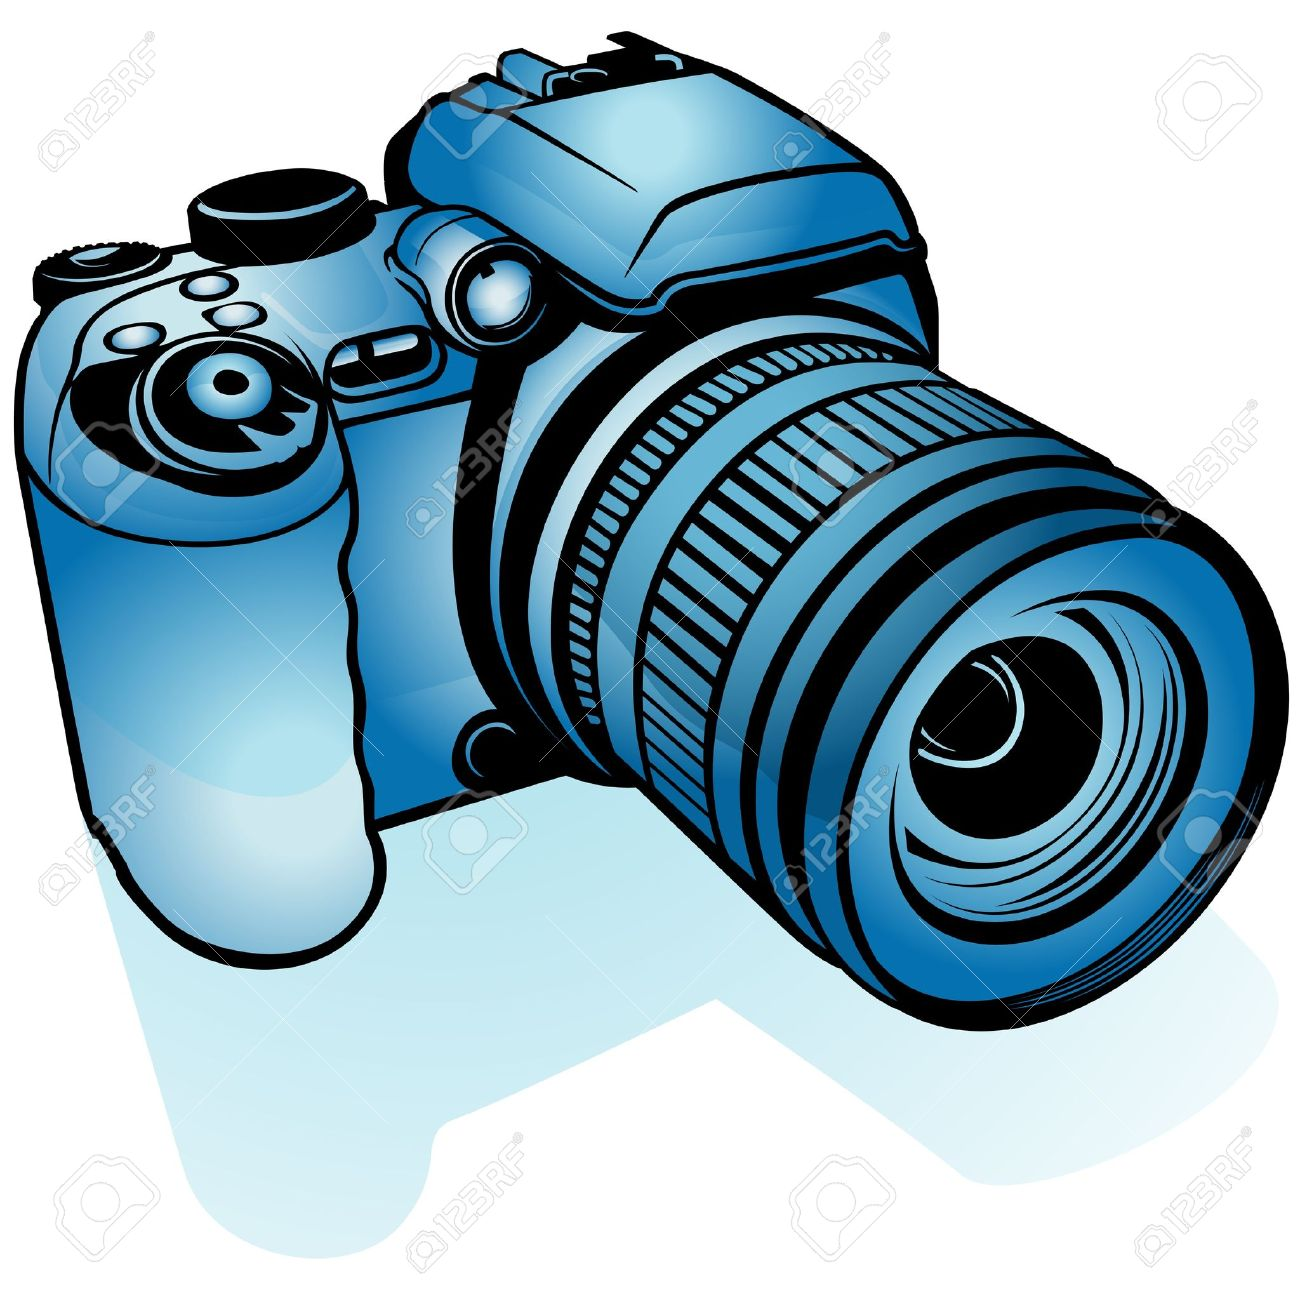 Blue Digital Camera Colored Illustration As Vector Royalty Free Cliparts Vectors And Stock Illustration Image 4351583